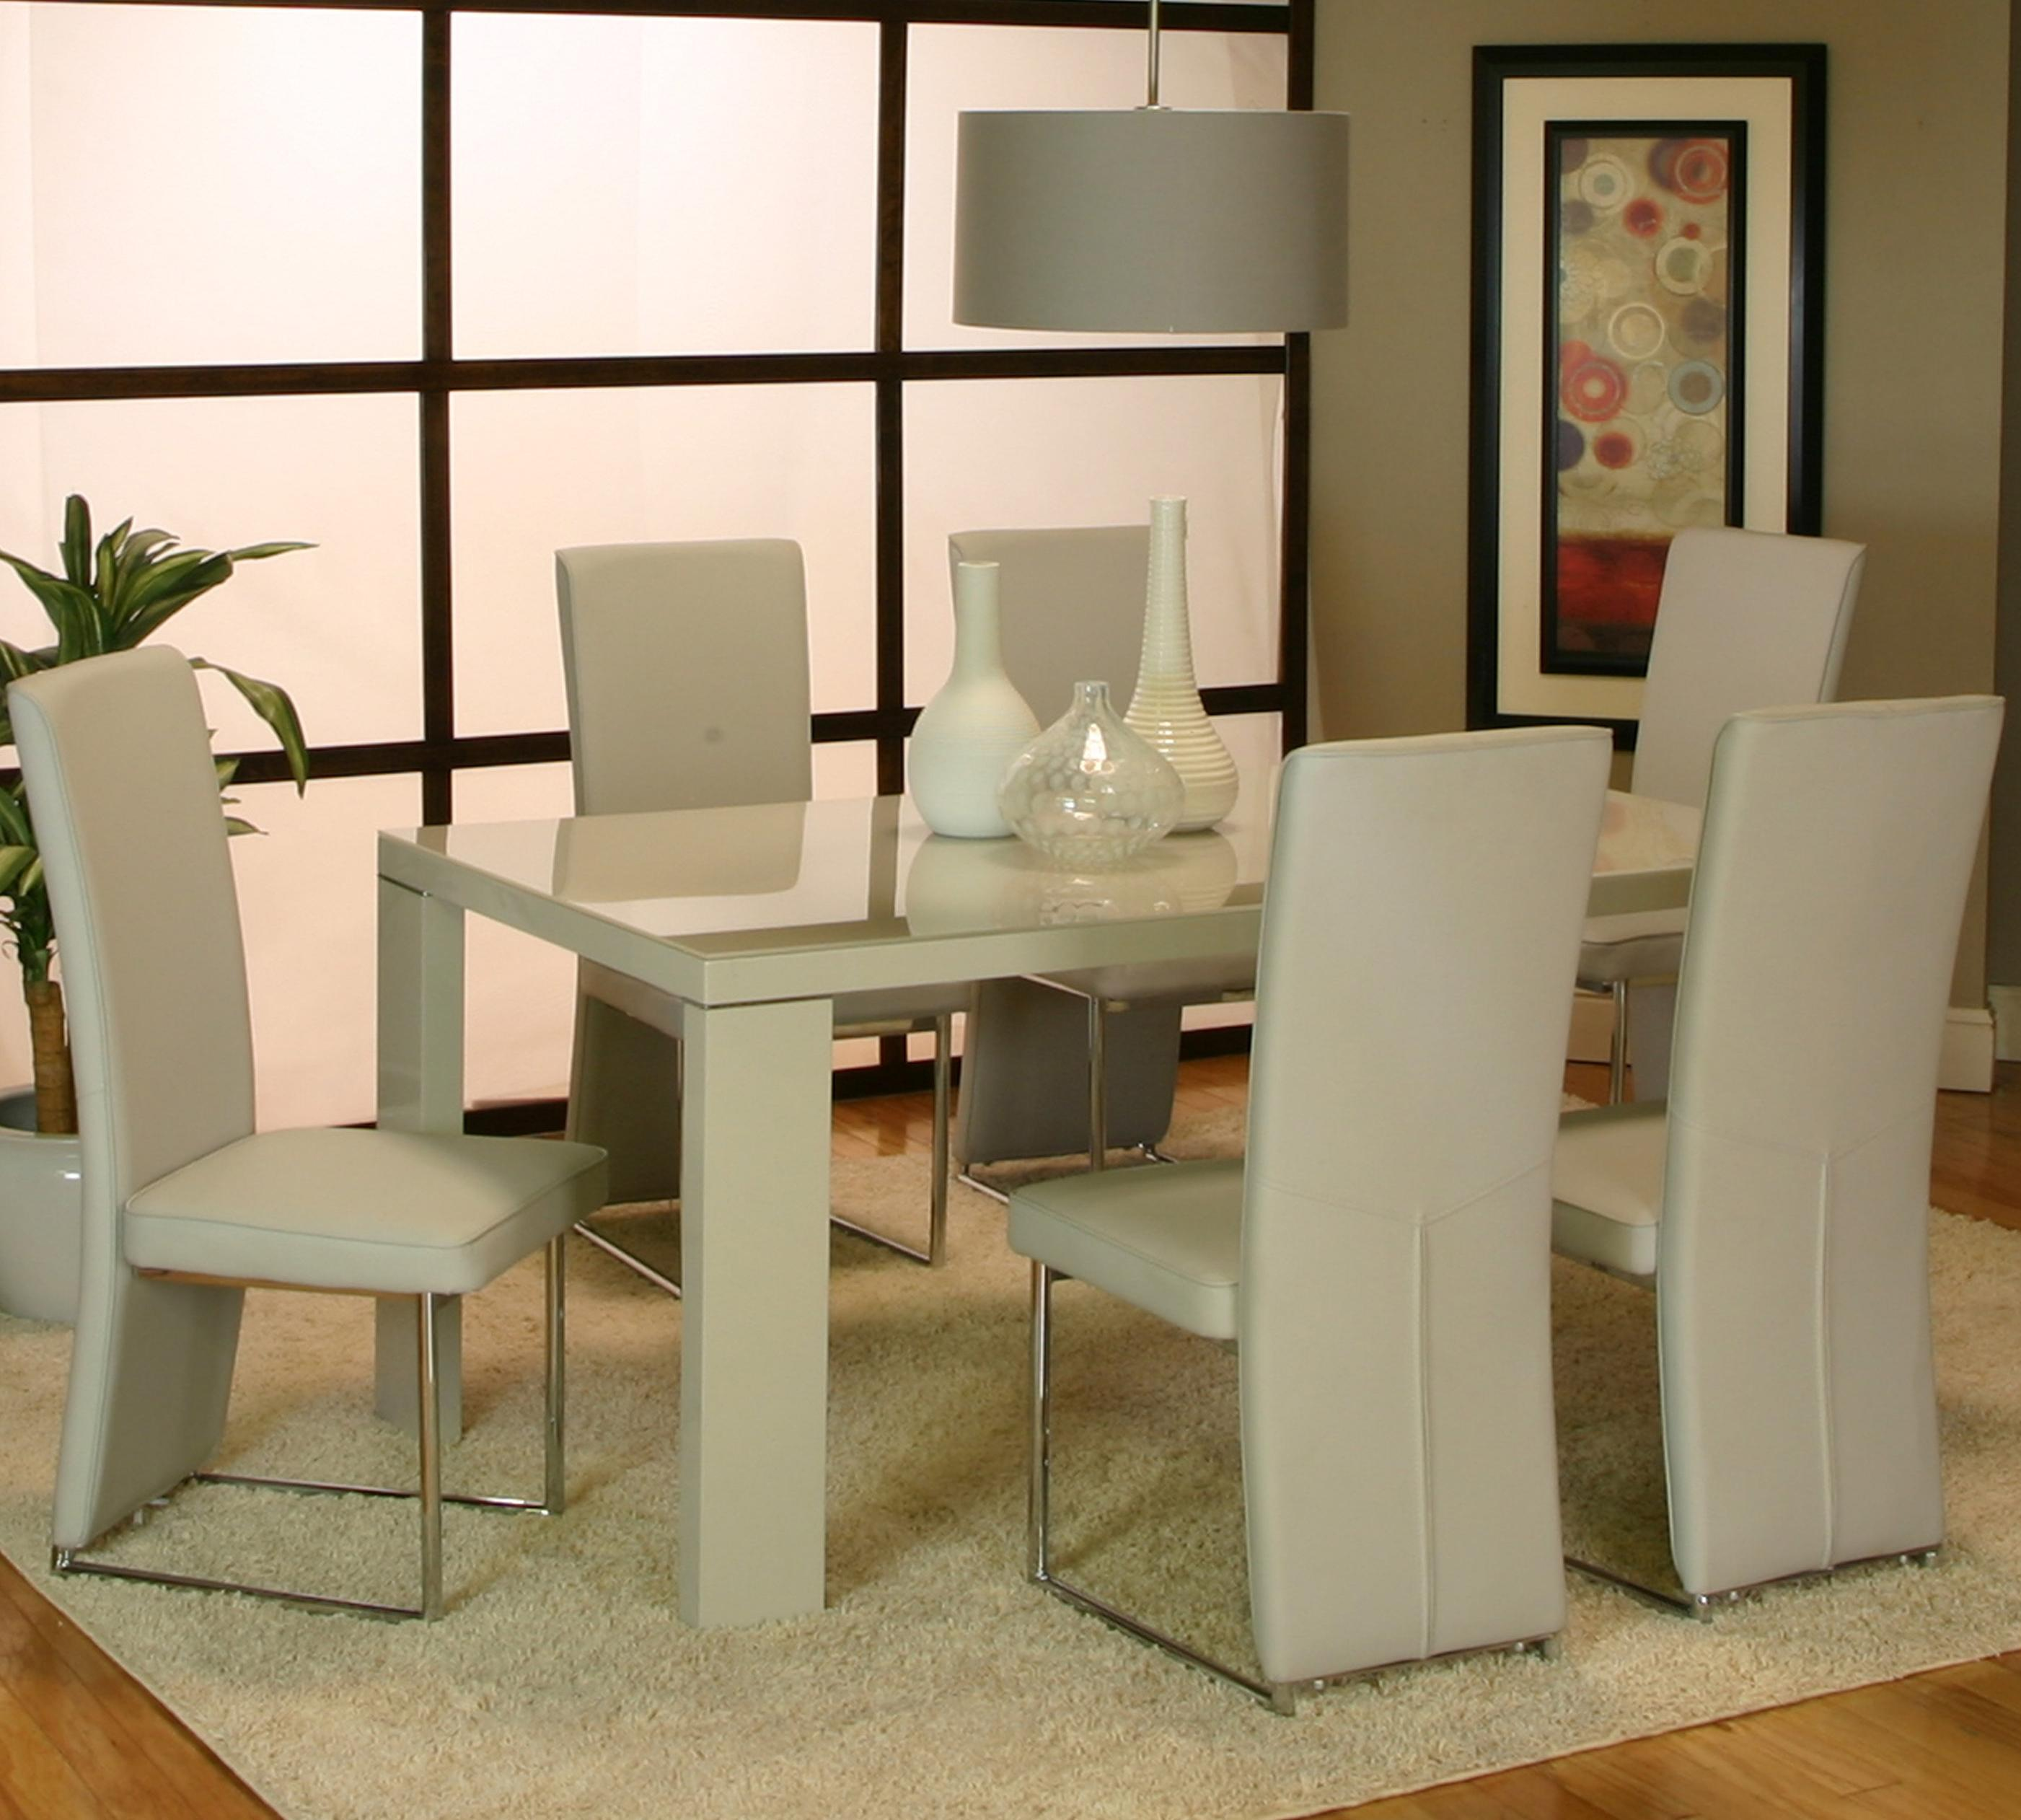 Dusk Dining Room Set Cramco: Cramco, Inc Venice Rectangular Dinner Table W/ Tempered